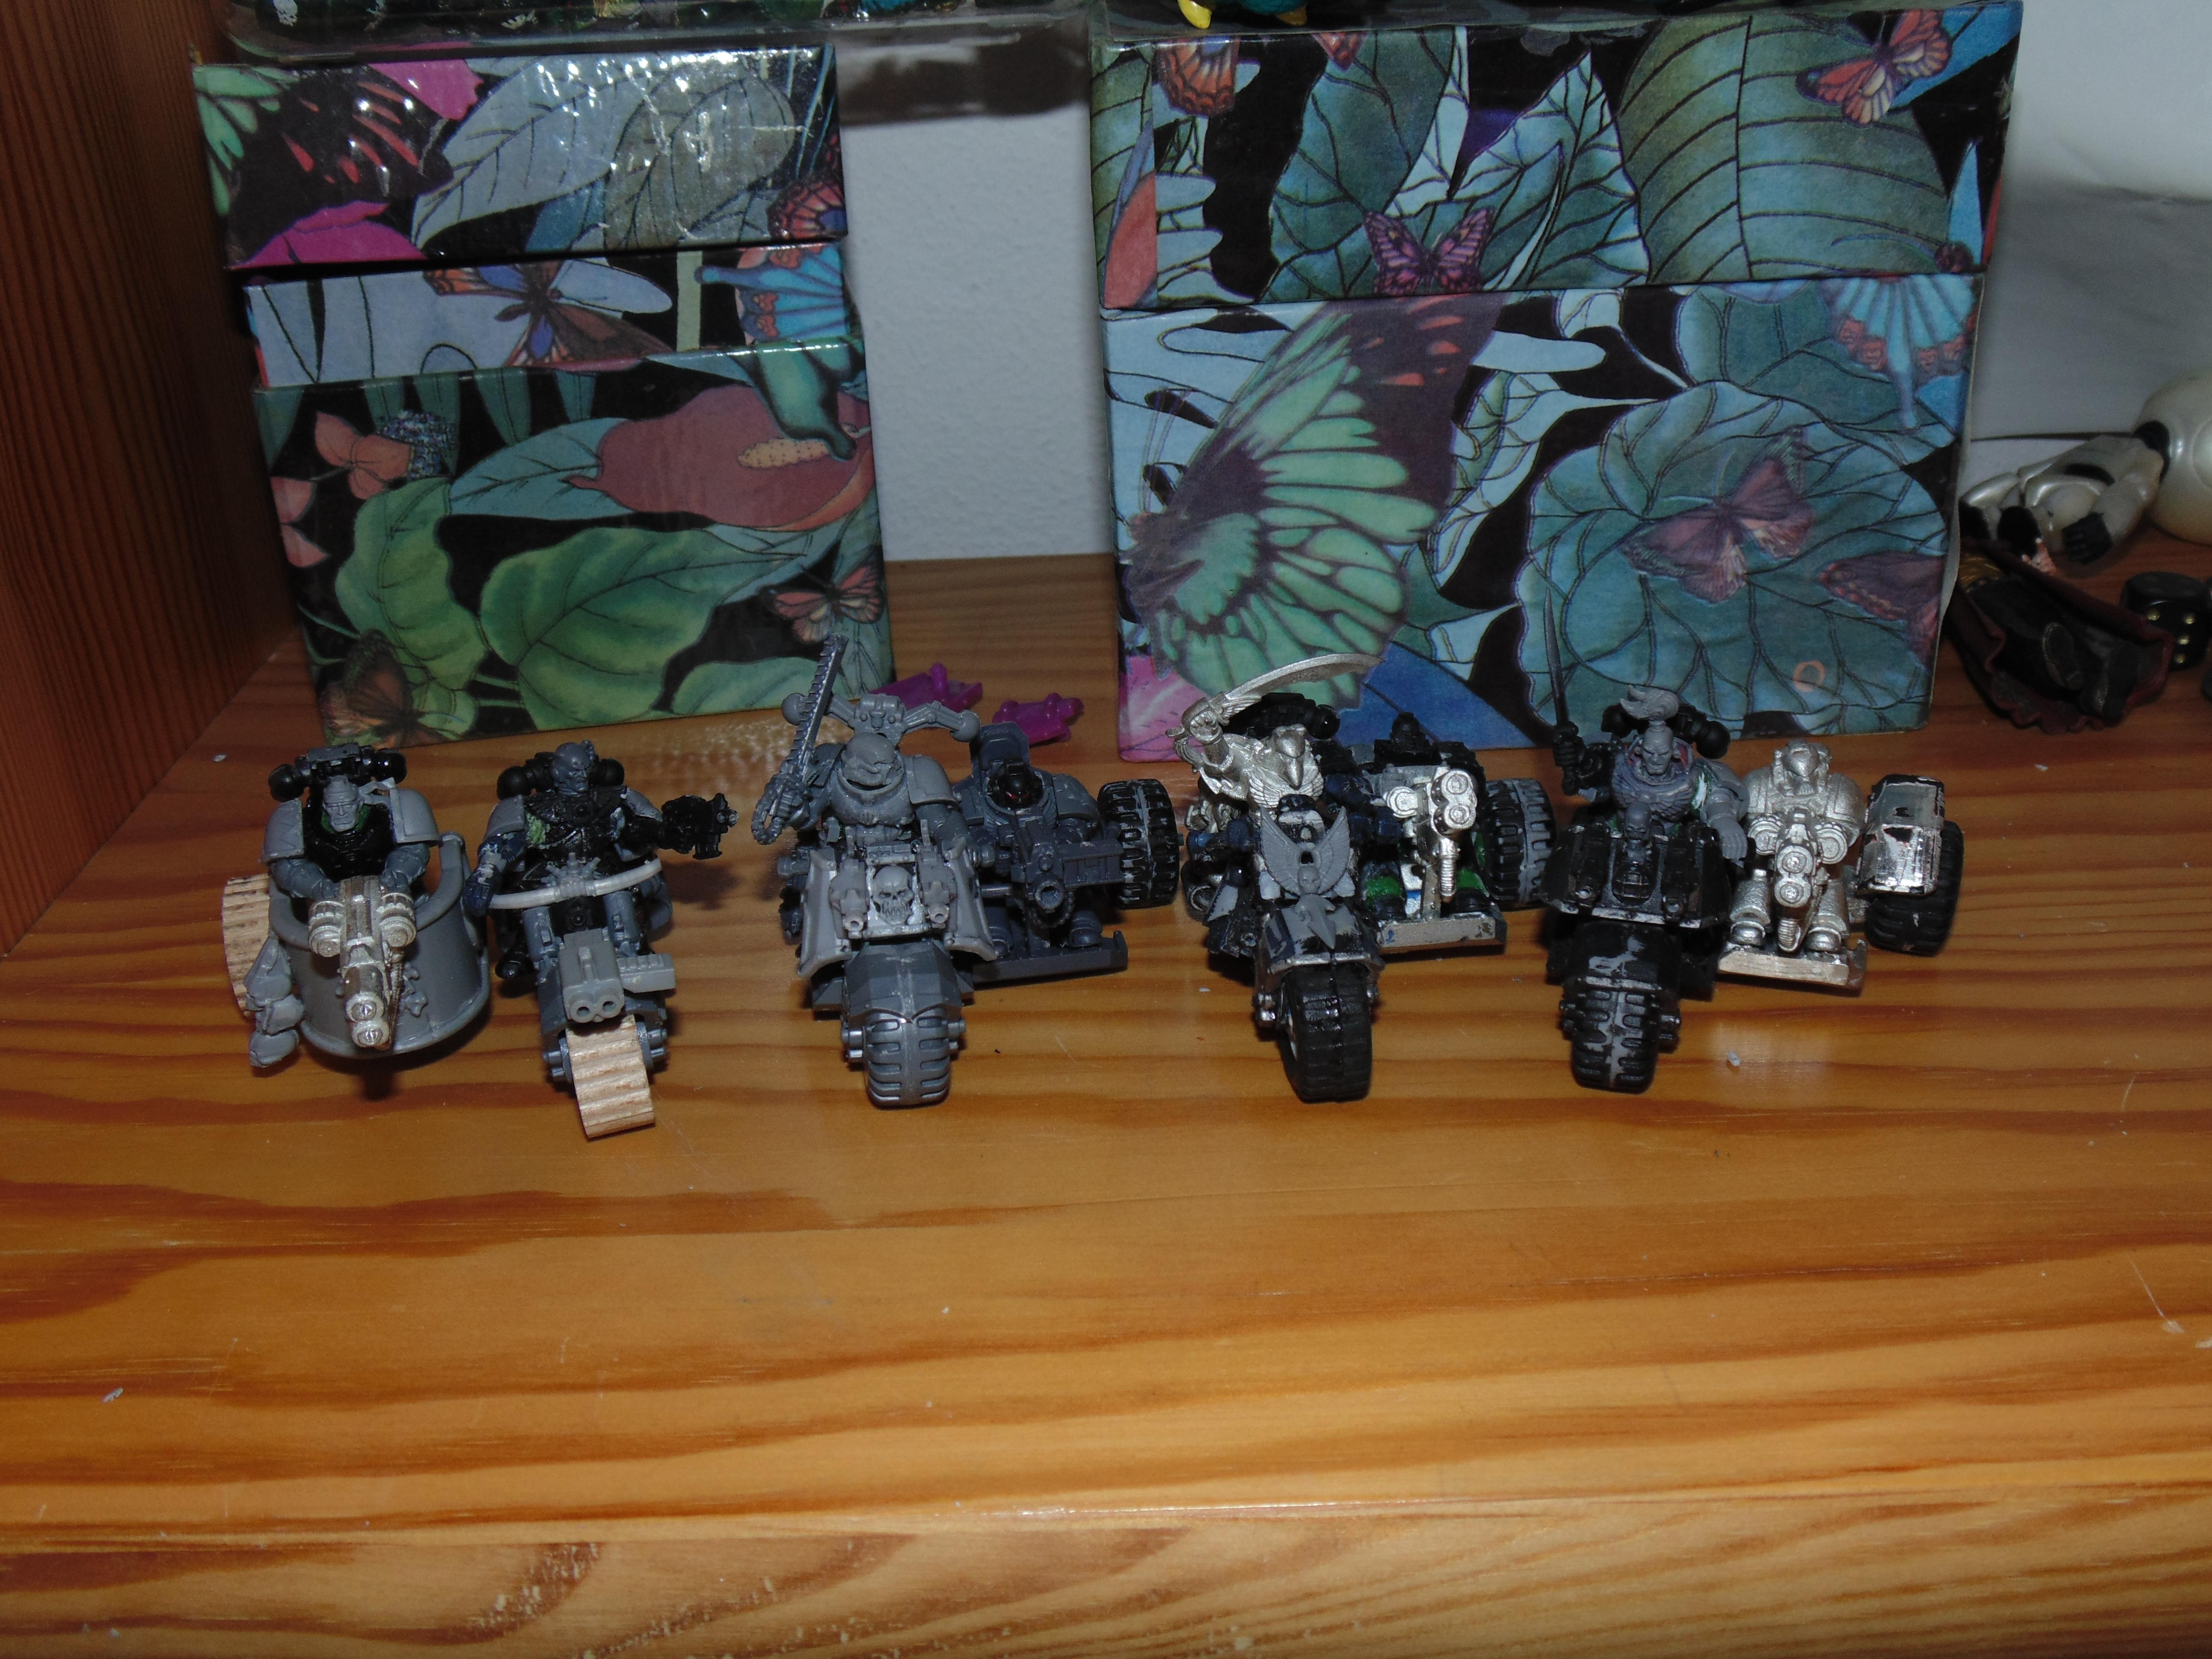 Army, Attack, Big, Bike, Blood, Chaplain, Conversion, Dreadnought, Epistolarii, Huge, Old, Painting, Scars, School, Test, Trike, Trikes, White, Work In Progress, Ws